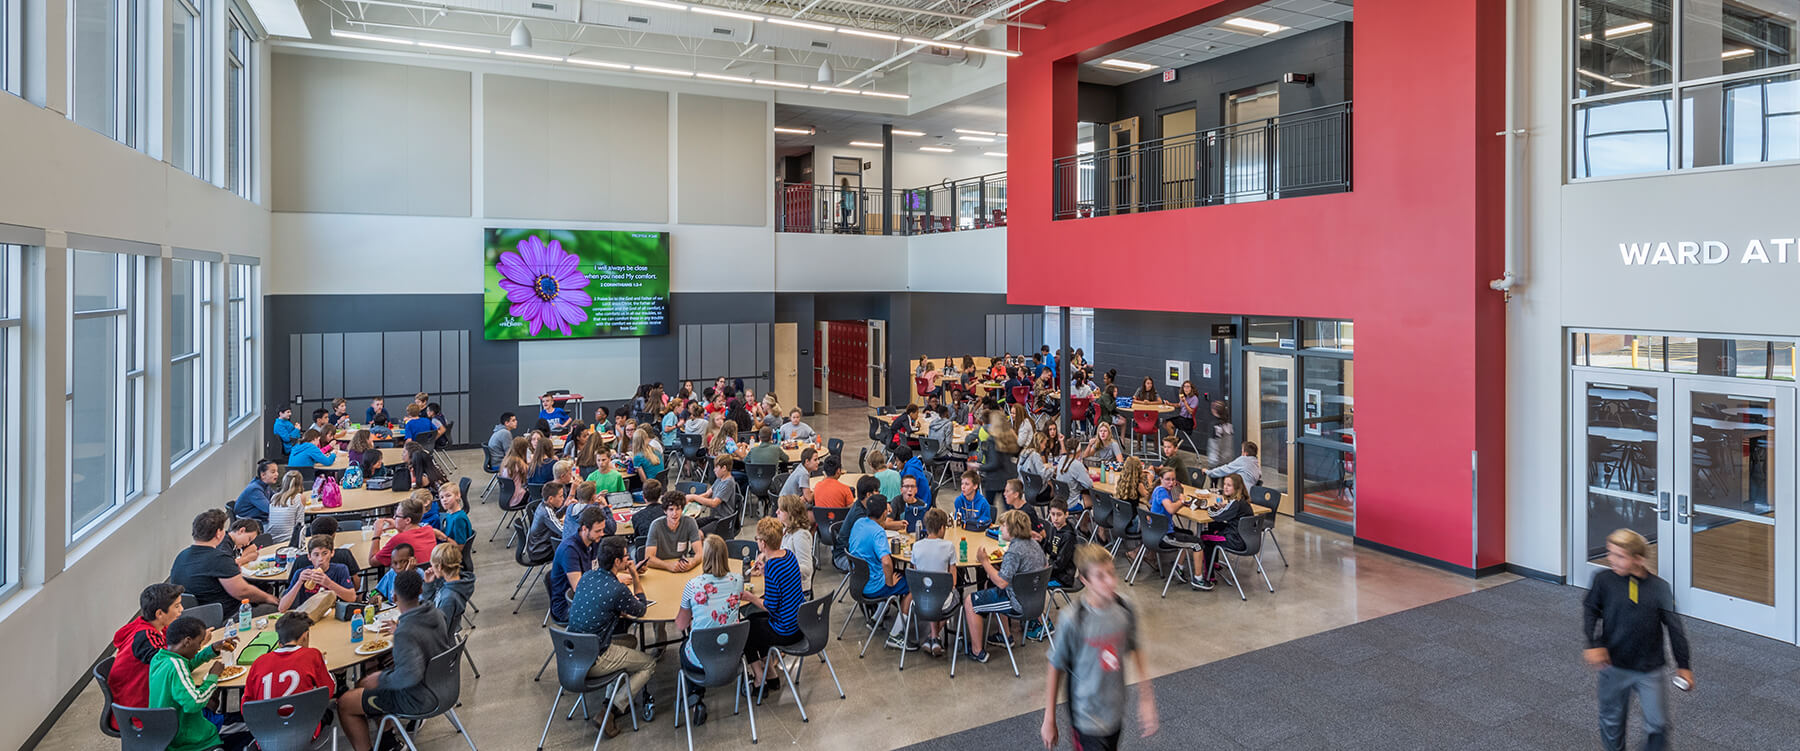 Timothy Christian Middle School Lunchroom and gathering space